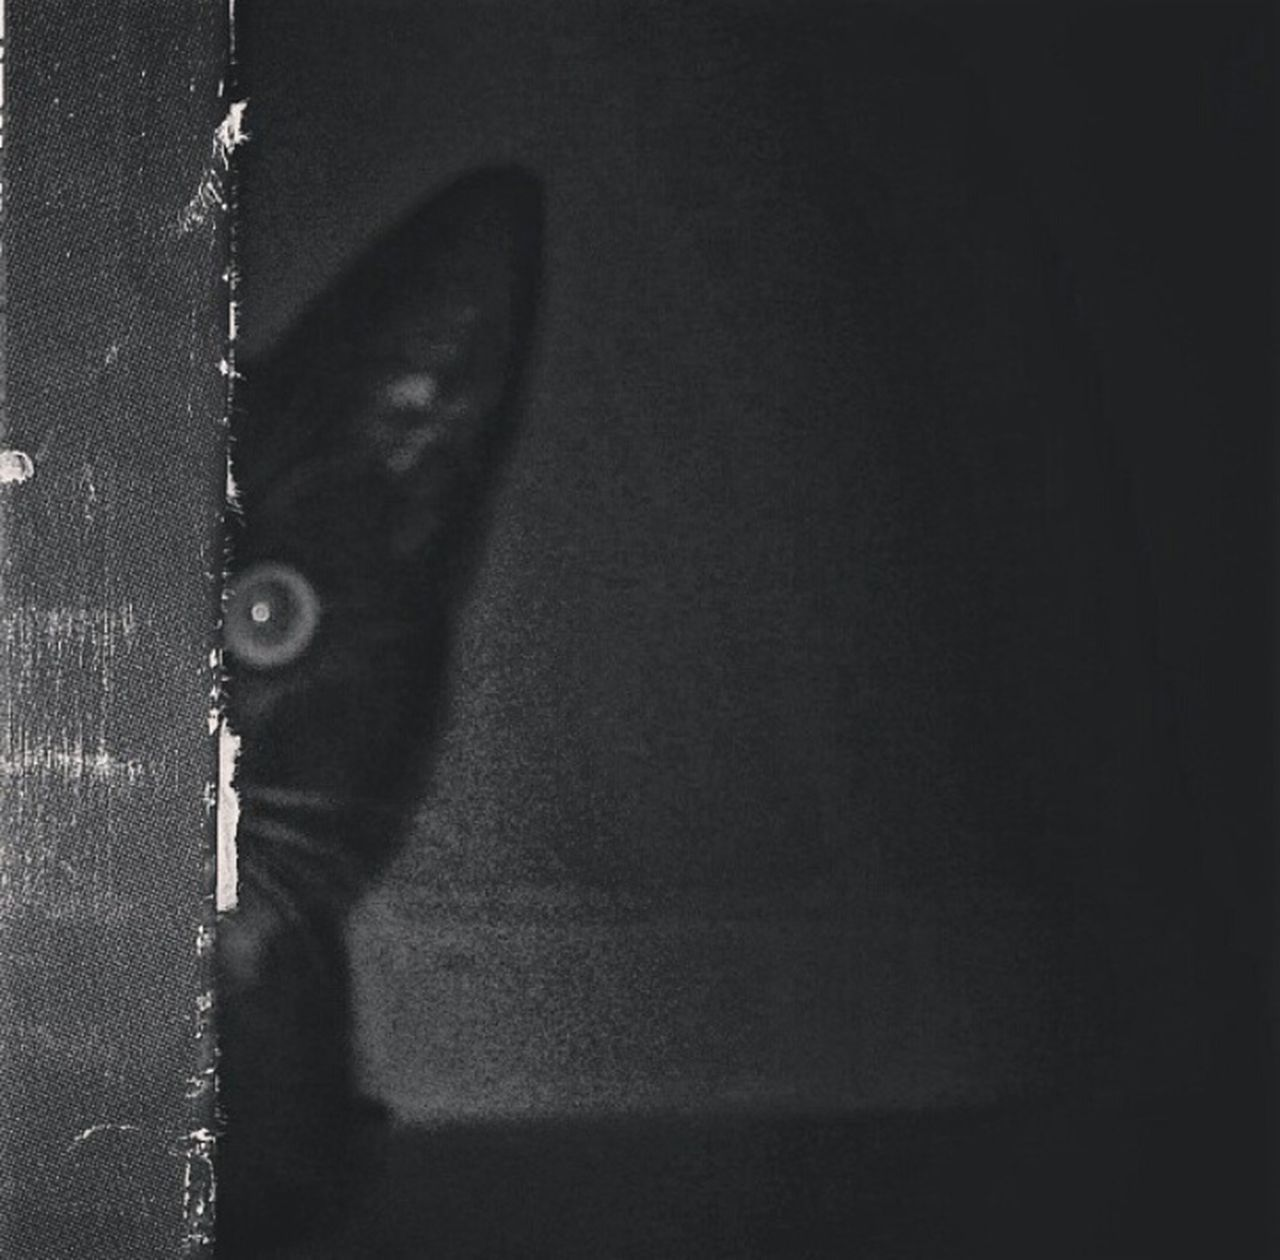 Picturing Individuality Check This Out B&w Photography B&W Obsession Black & White You Looking At Me????? Cats Of EyeEm